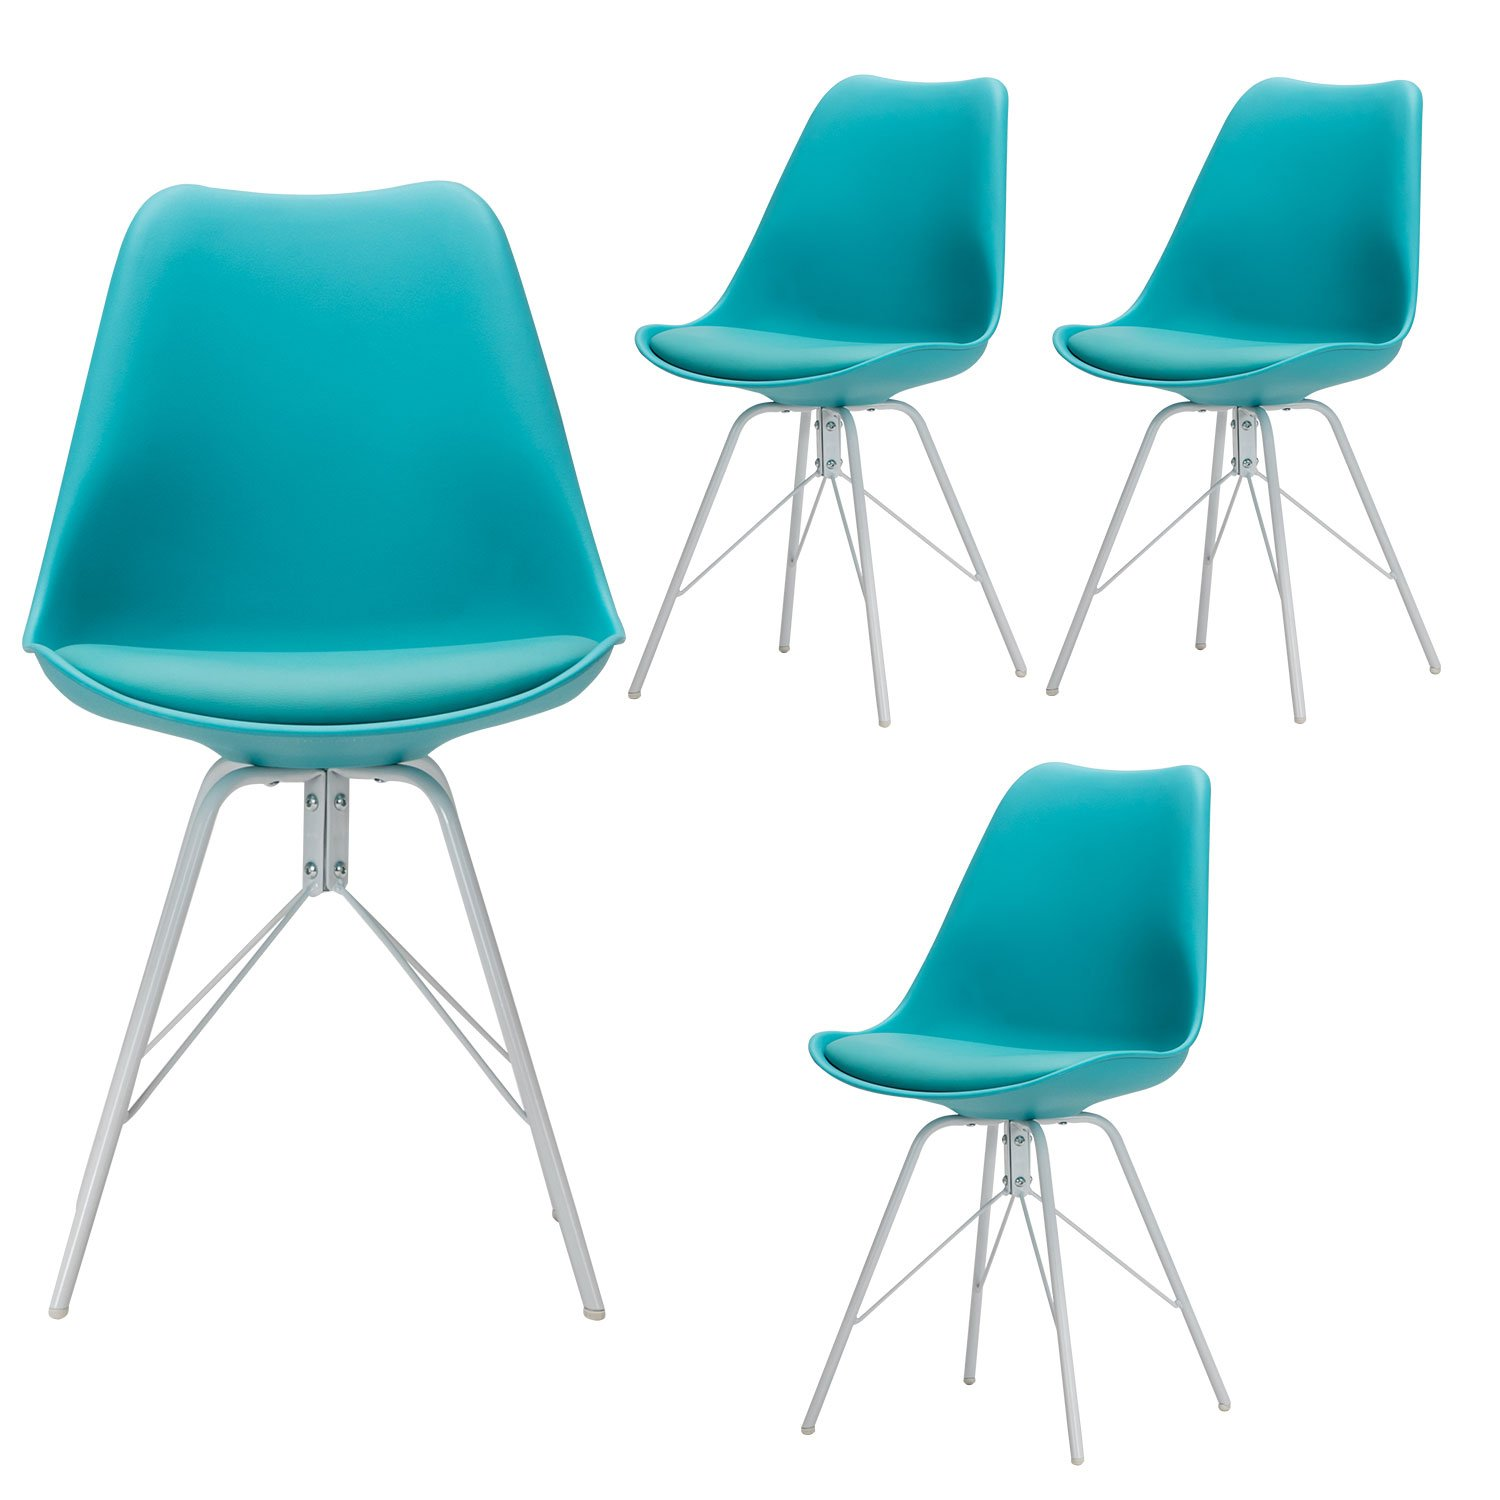 Yurucy office dining chairs kitchen candy color furniture chair set of 4 side white metal assembled legs chair can be place in office living room